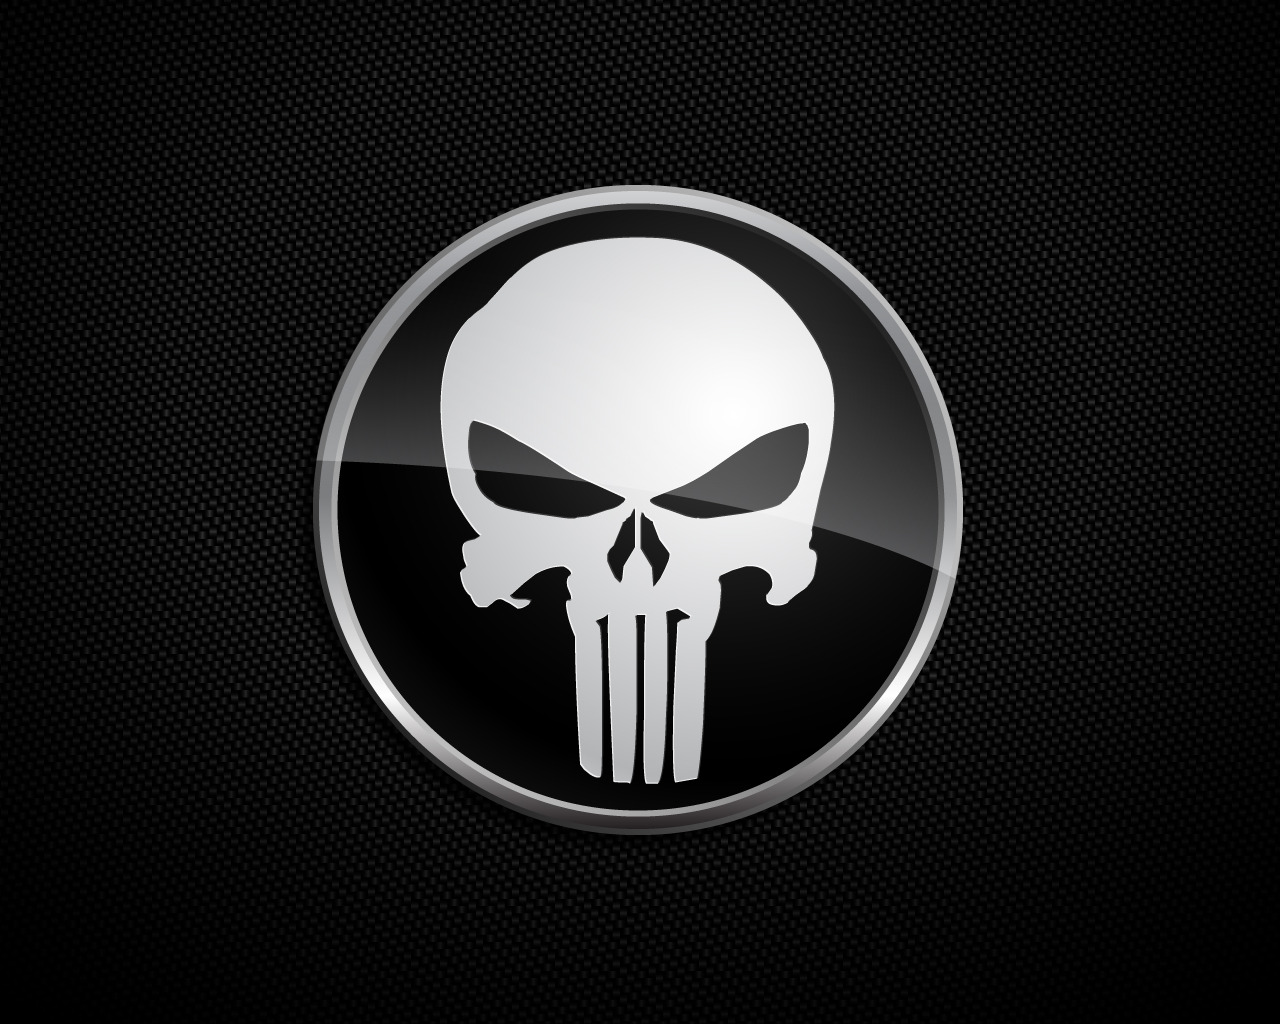 The Punisher Skull Logo HD Wallpapers Download Wallpapers in HD 1280x1024